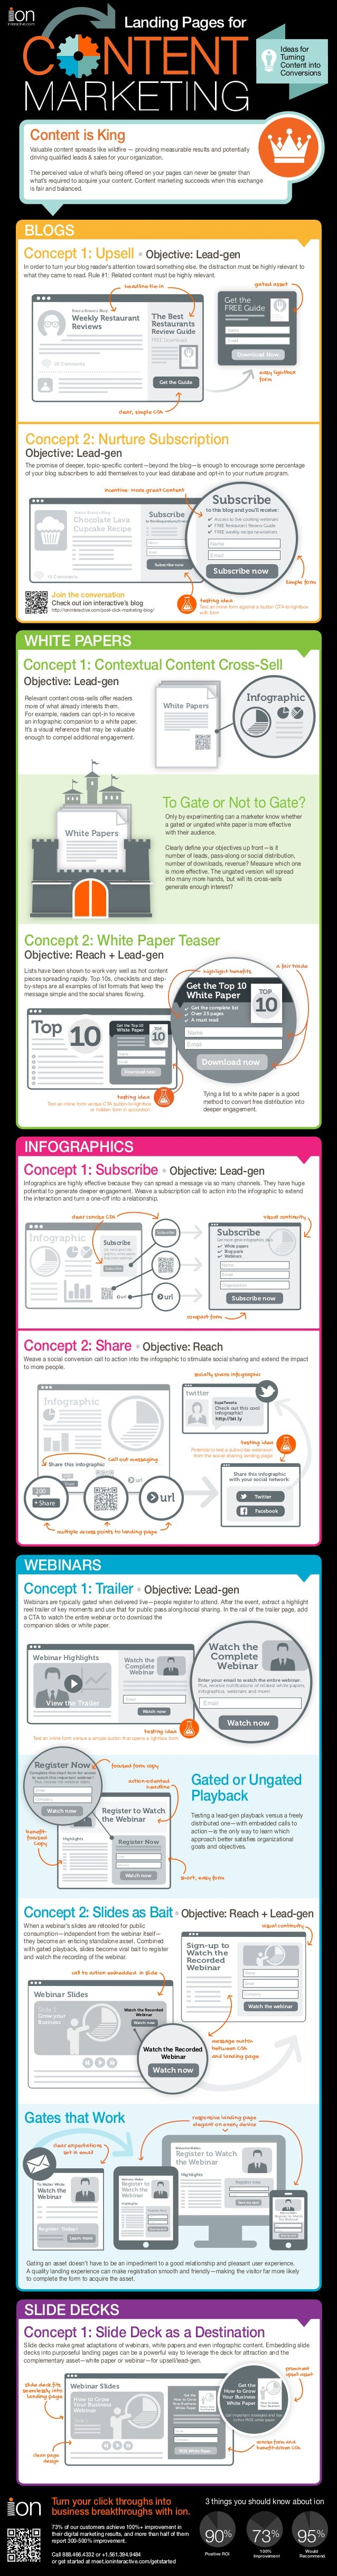 Landing Pages for Content Marketing [Infographic]